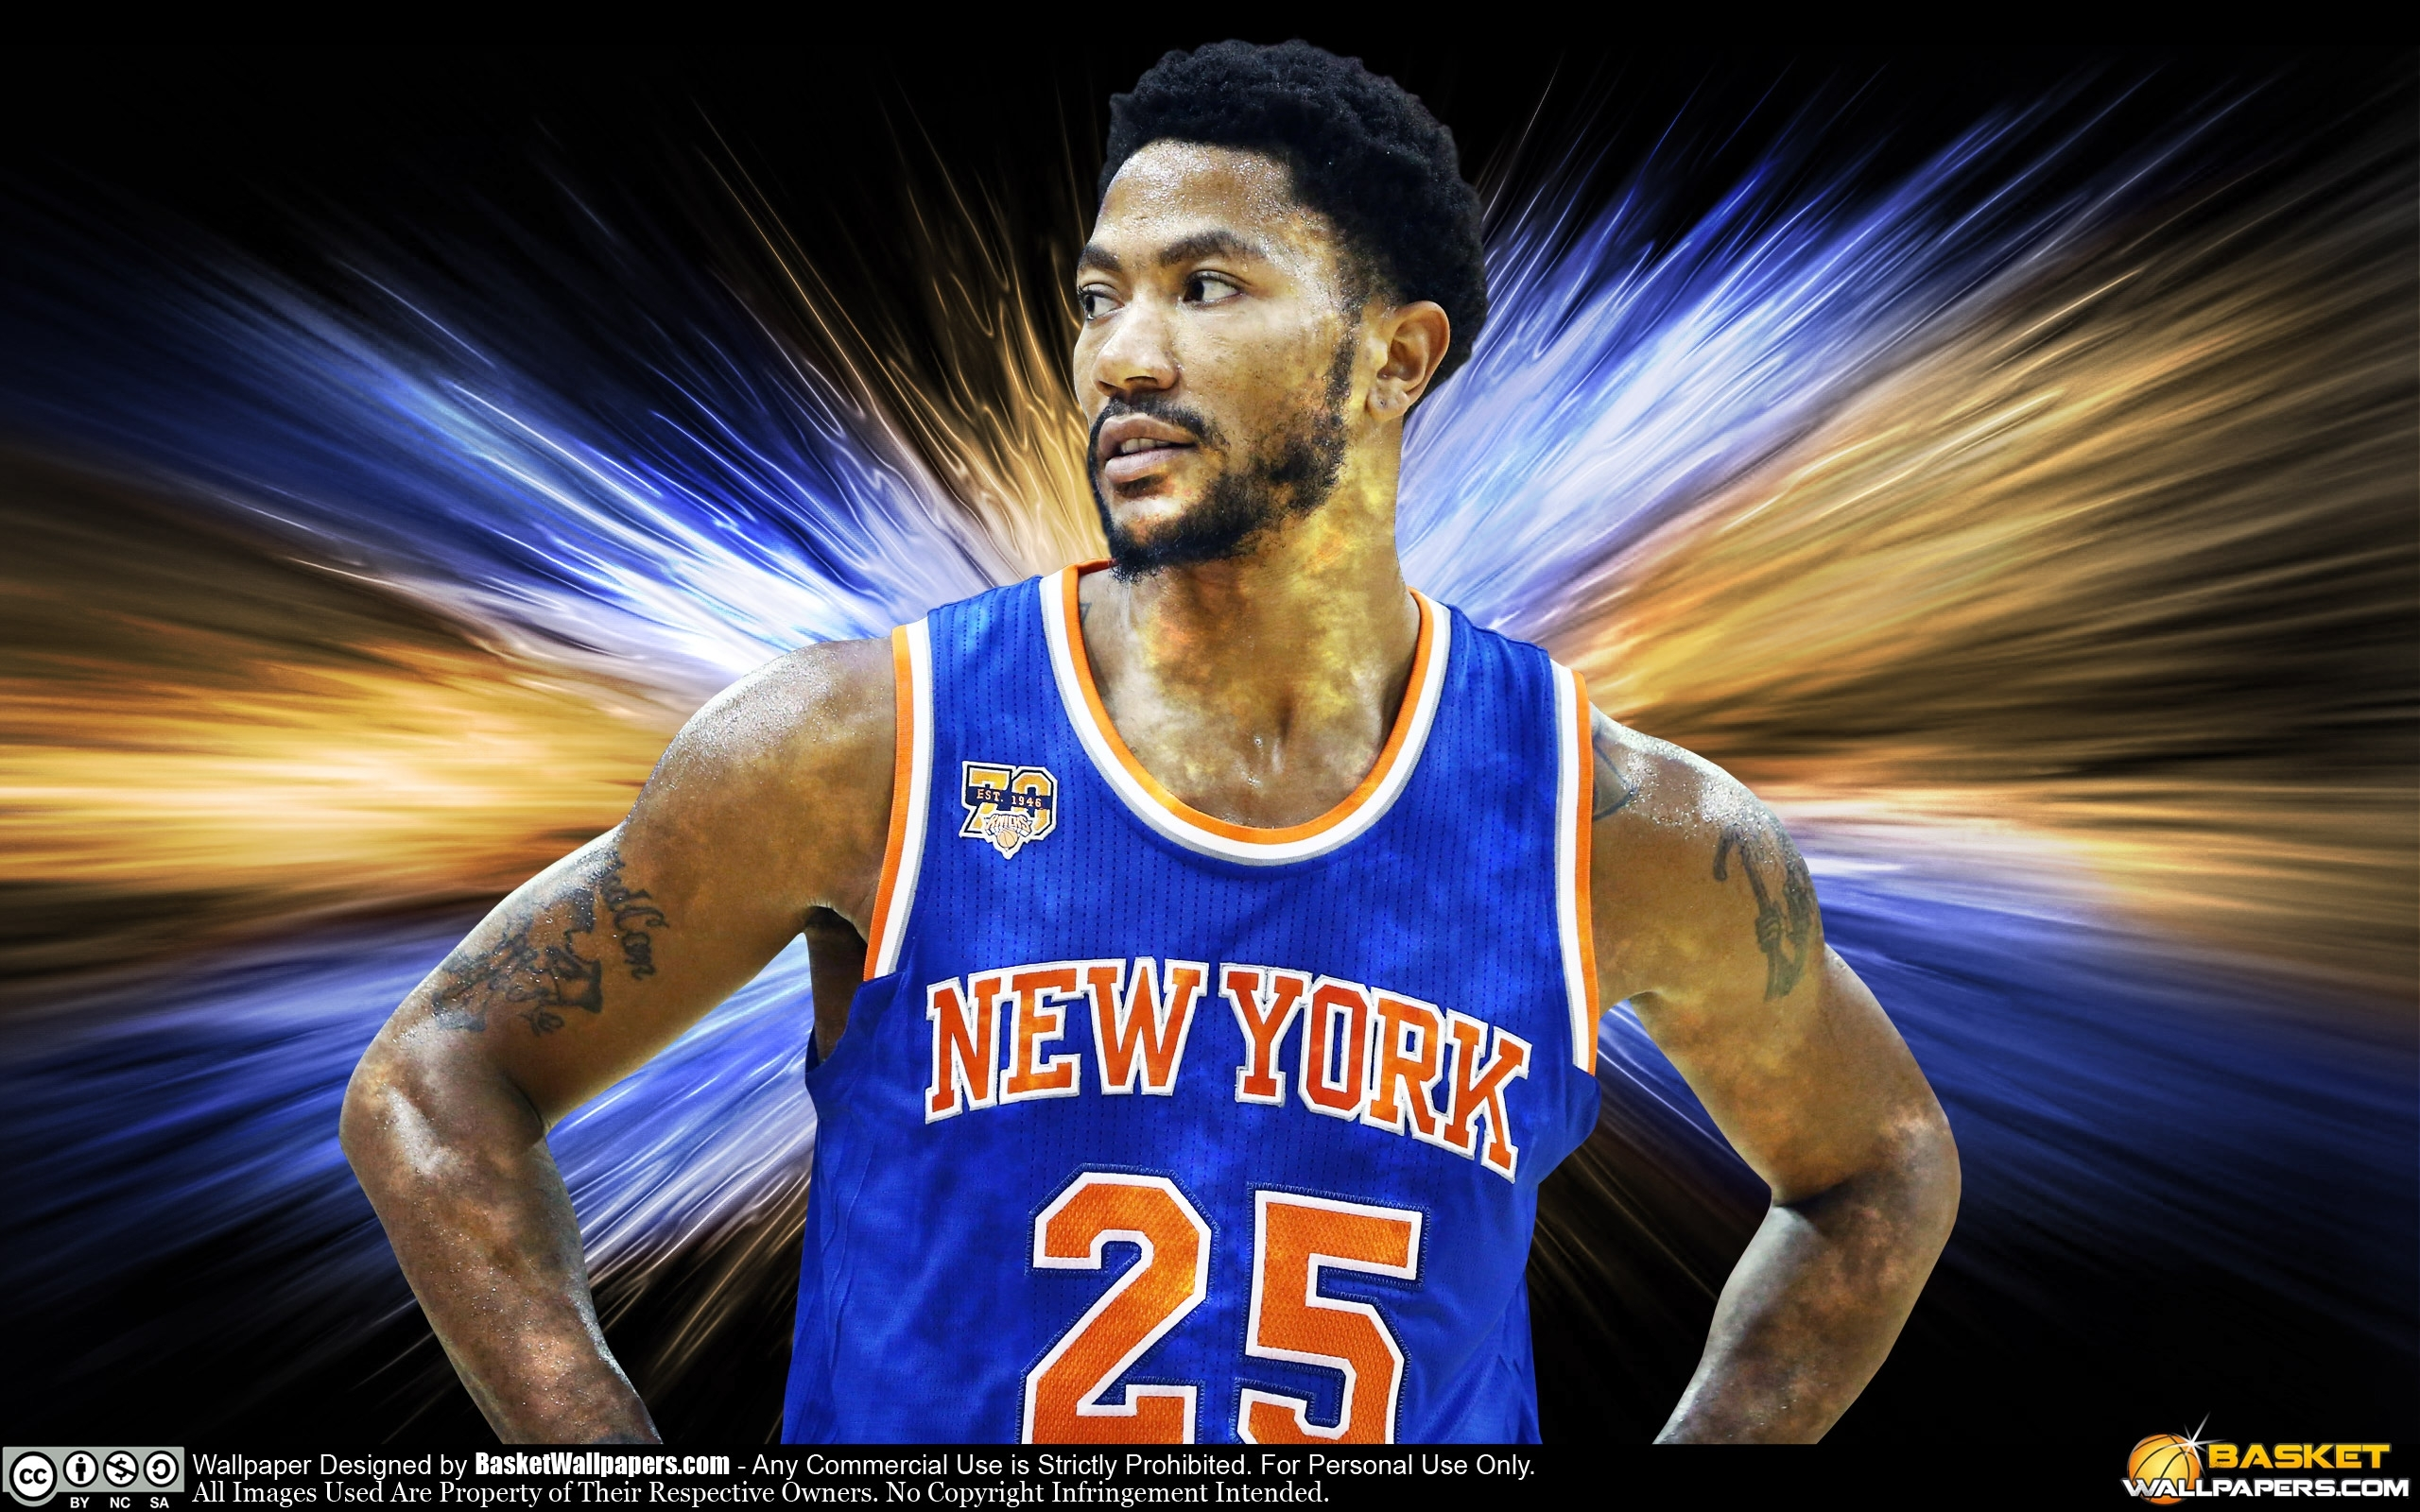 derrick rose wallpapers | basketball wallpapers at basketwallpapers